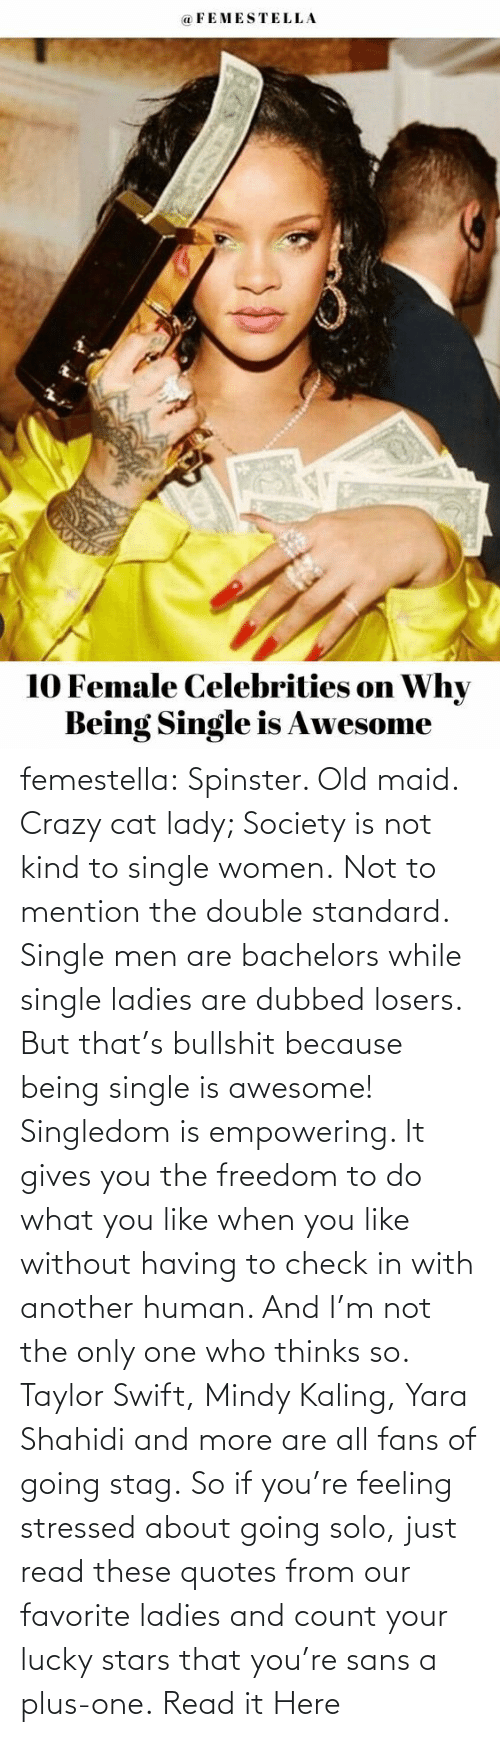 men: femestella: Spinster. Old maid. Crazy cat lady; Society is not kind to single women. Not to mention the double standard. Single men are bachelors while single ladies are dubbed losers. But that's bullshit because being single is awesome! Singledom is empowering. It gives you the freedom to do what you like when you like without having to check in with another human. And I'm not the only one who thinks so. Taylor Swift, Mindy Kaling, Yara Shahidi and more are all fans of going stag. So if you're feeling stressed about going solo, just read these quotes from our favorite ladies and count your lucky stars that you're sans a plus-one. Read it Here